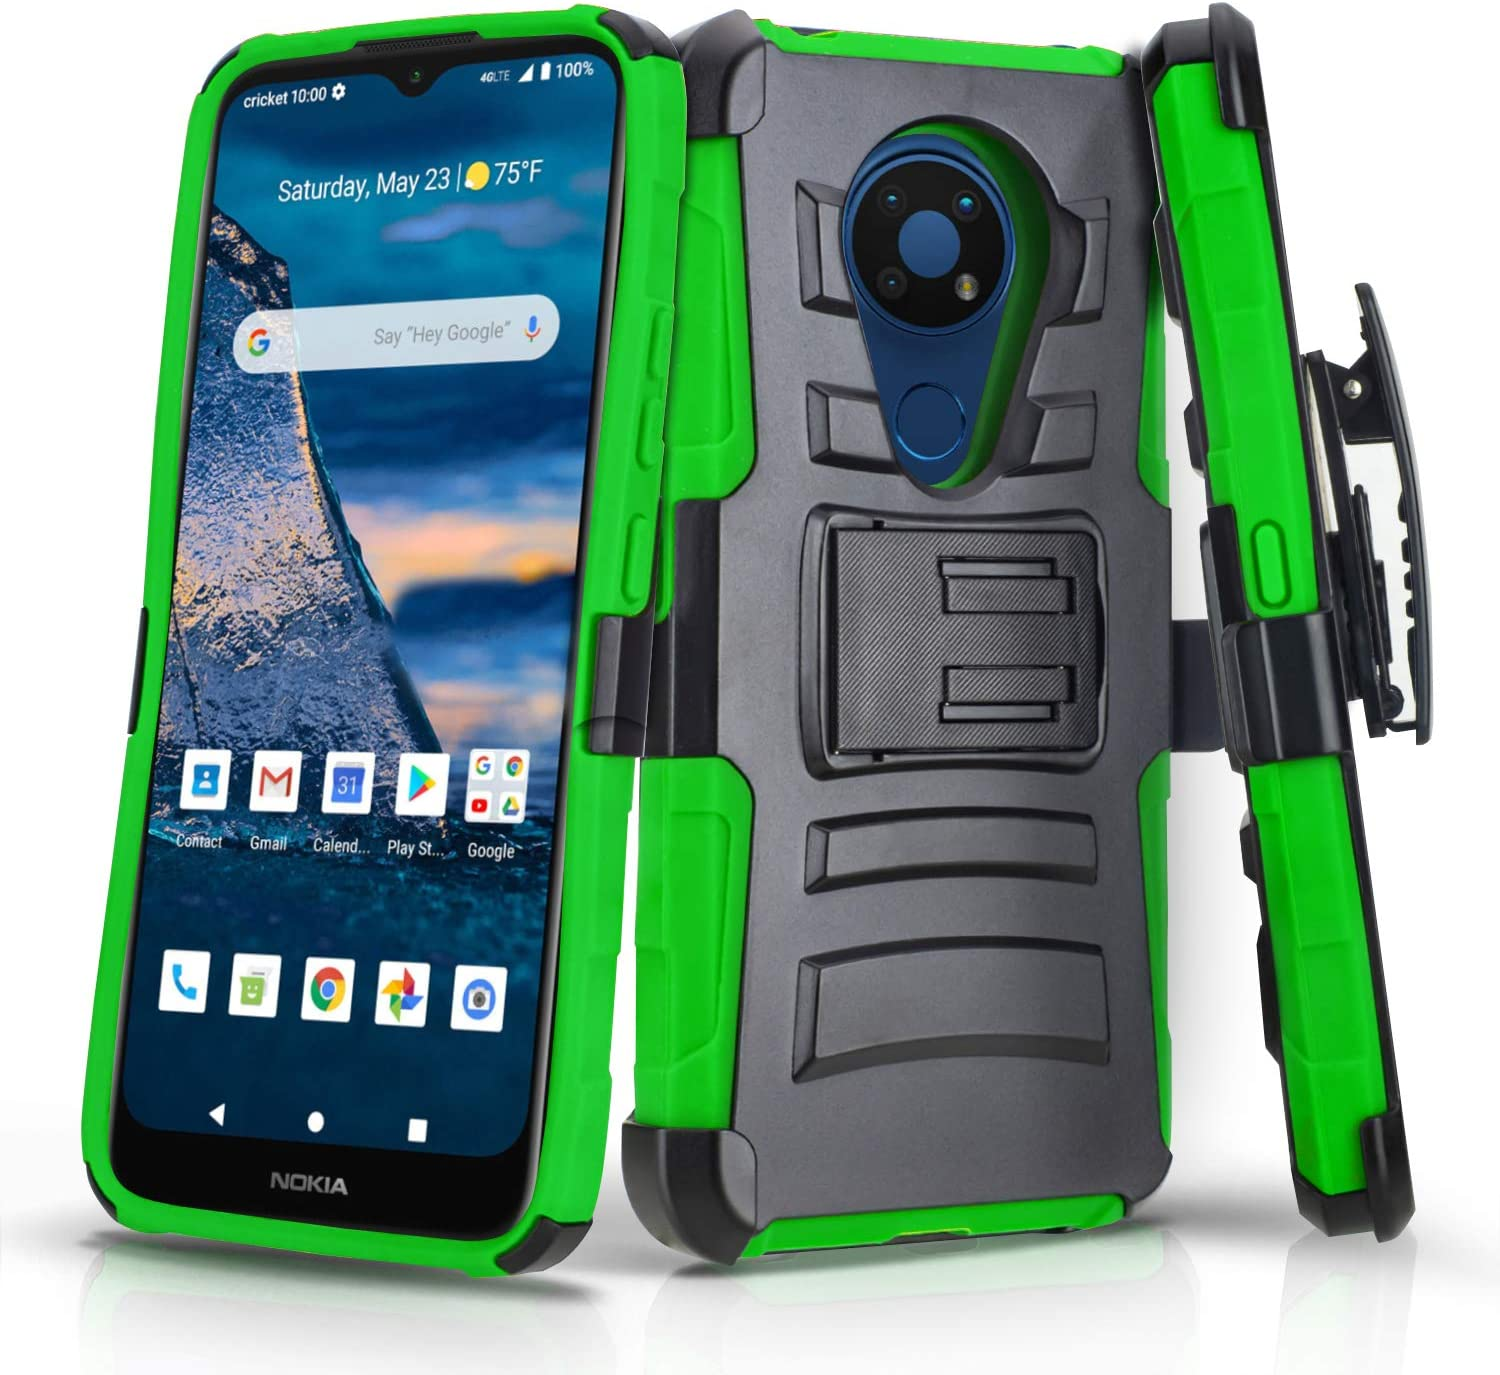 CasemartUSA Phone Case for [Nokia C5 Endi (Cricket Wireless)], [Refined Series][Green] Shockproof Protective Cover with Built-in Kickstand & Swivel Belt Clip Holster for Nokia C5 Endi